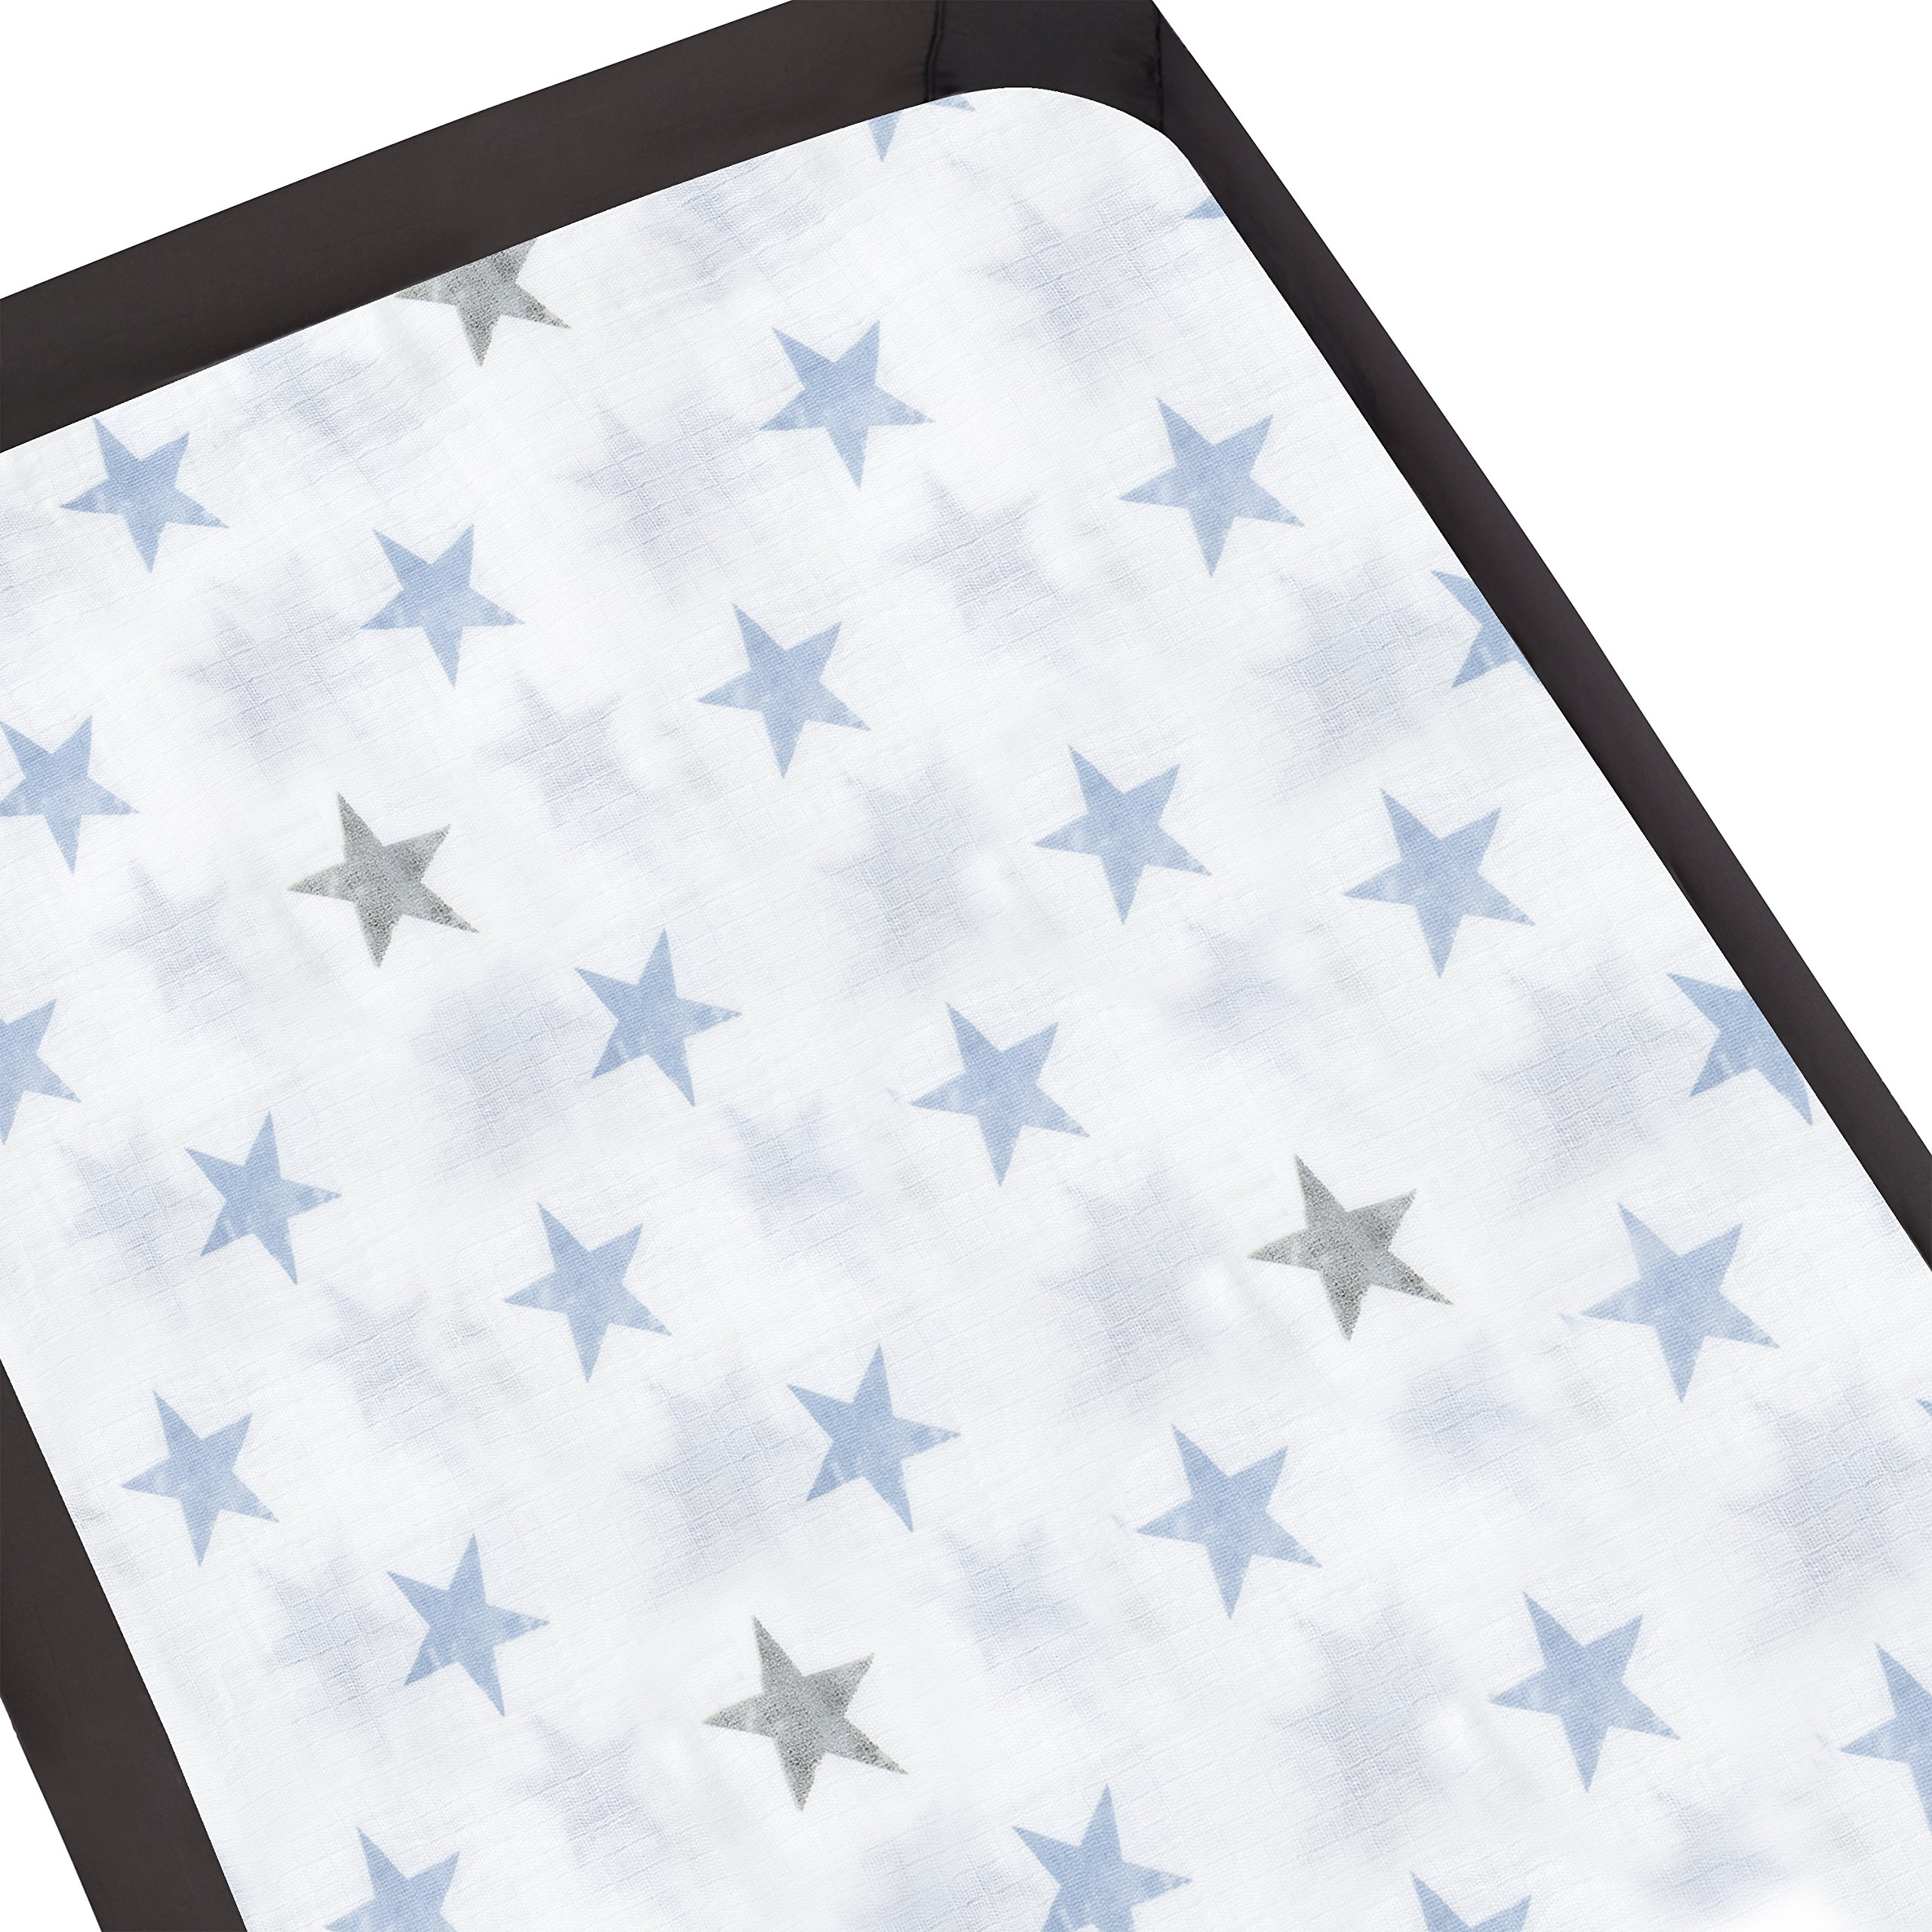 Aden by Aden + Anais Pack 'n Play Playard Crib Sheet, 100% Cotton Muslin, Super Soft, Breathable, Snug Fit Dapper - Stars